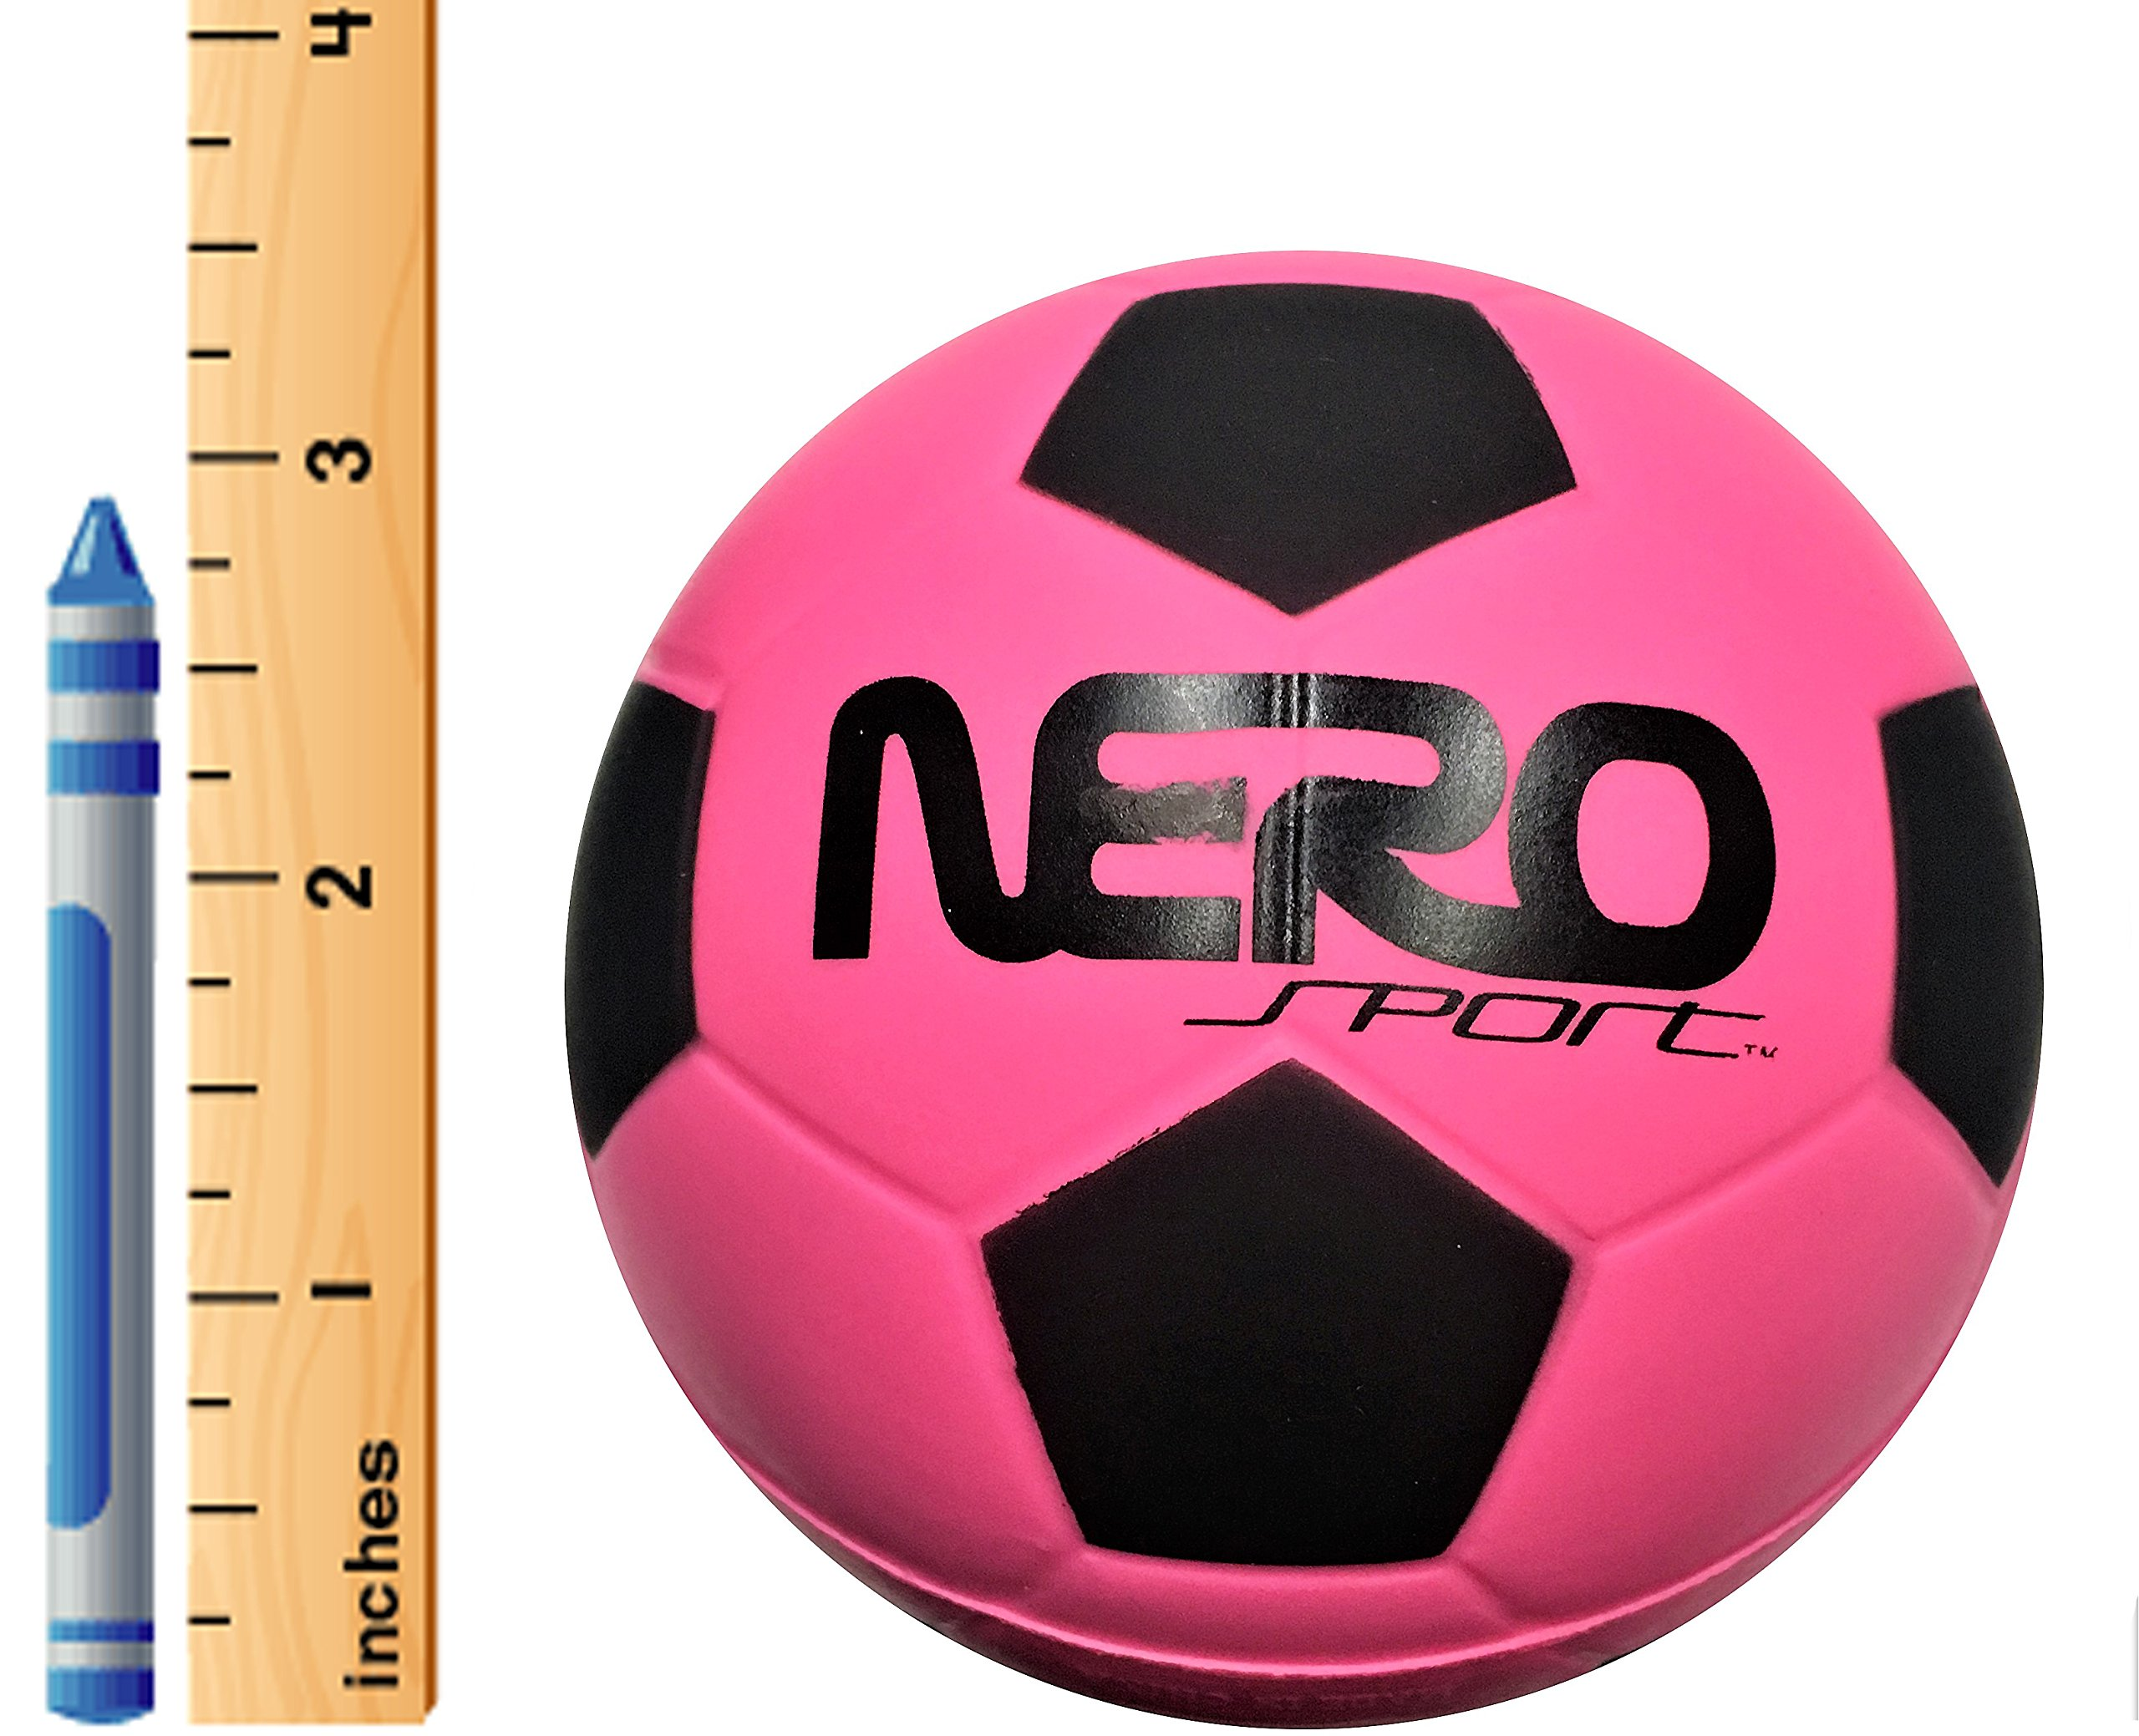 Nero Sports High Bounce Rubber Toy Ball 3.5'' Miniature Soccer Futbol Training Style Great For Streets Park Back Yard Agility Ball Bulk Wholesale Gifts (pink soccer)